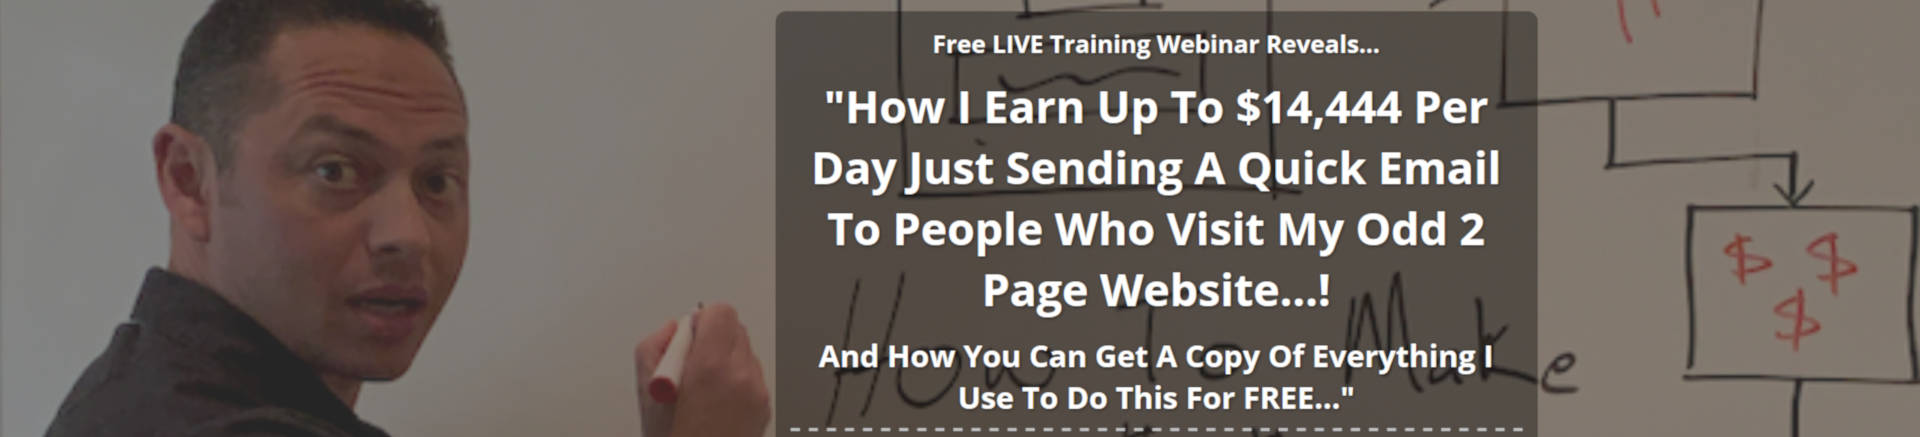 Finance  1k A Day Fast Track Training Program